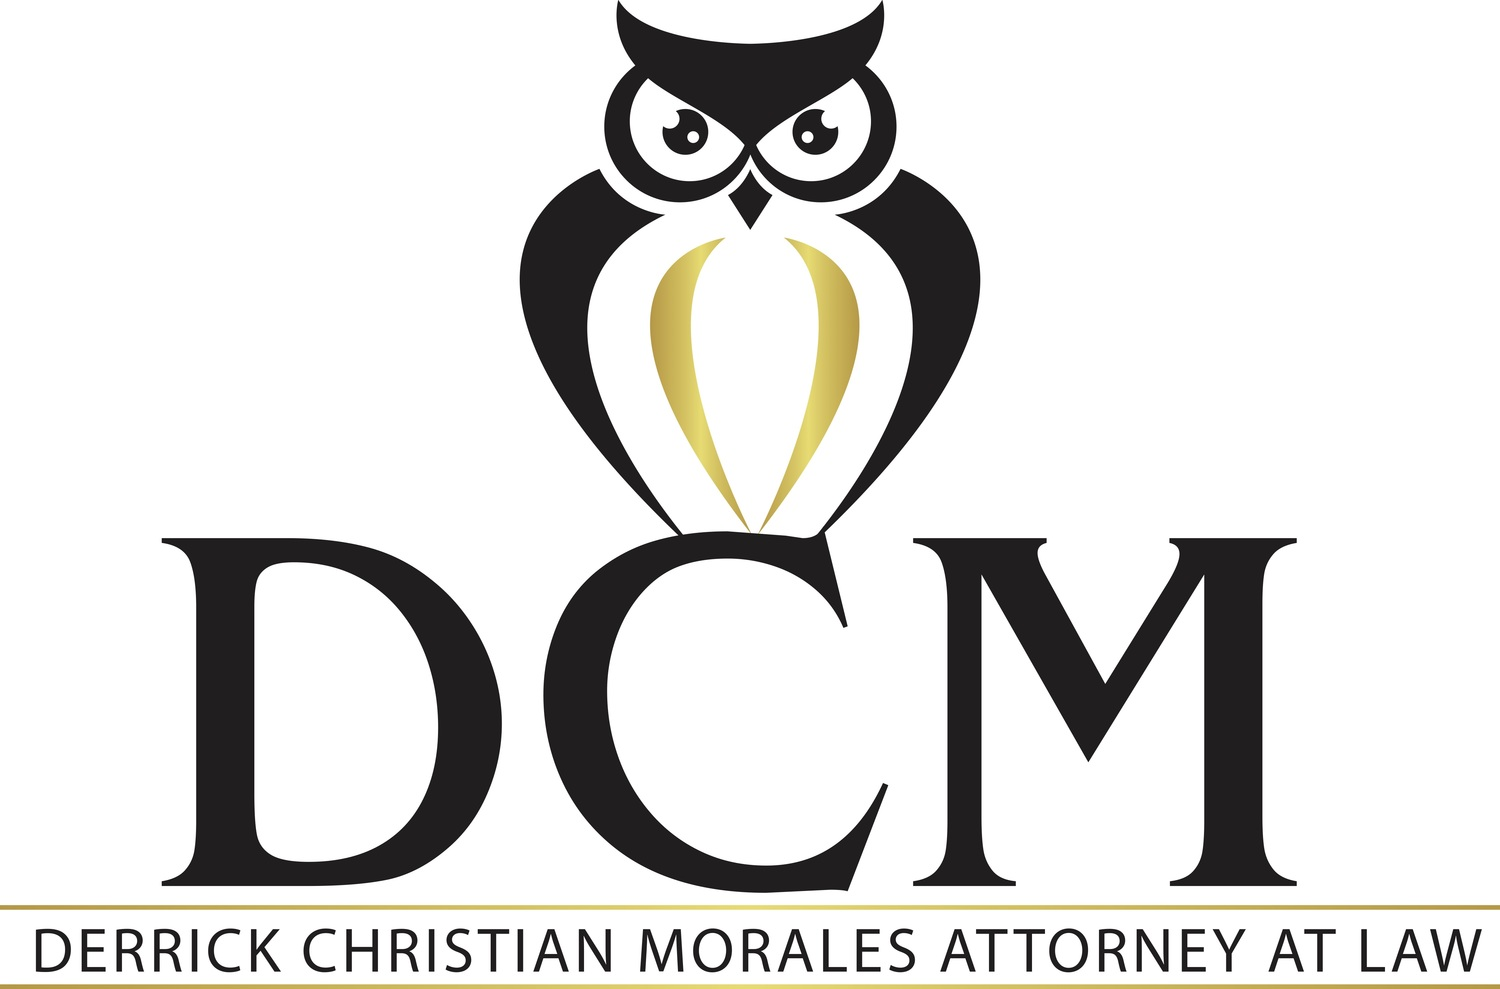 Derrick Christian Morales Attorney at Law